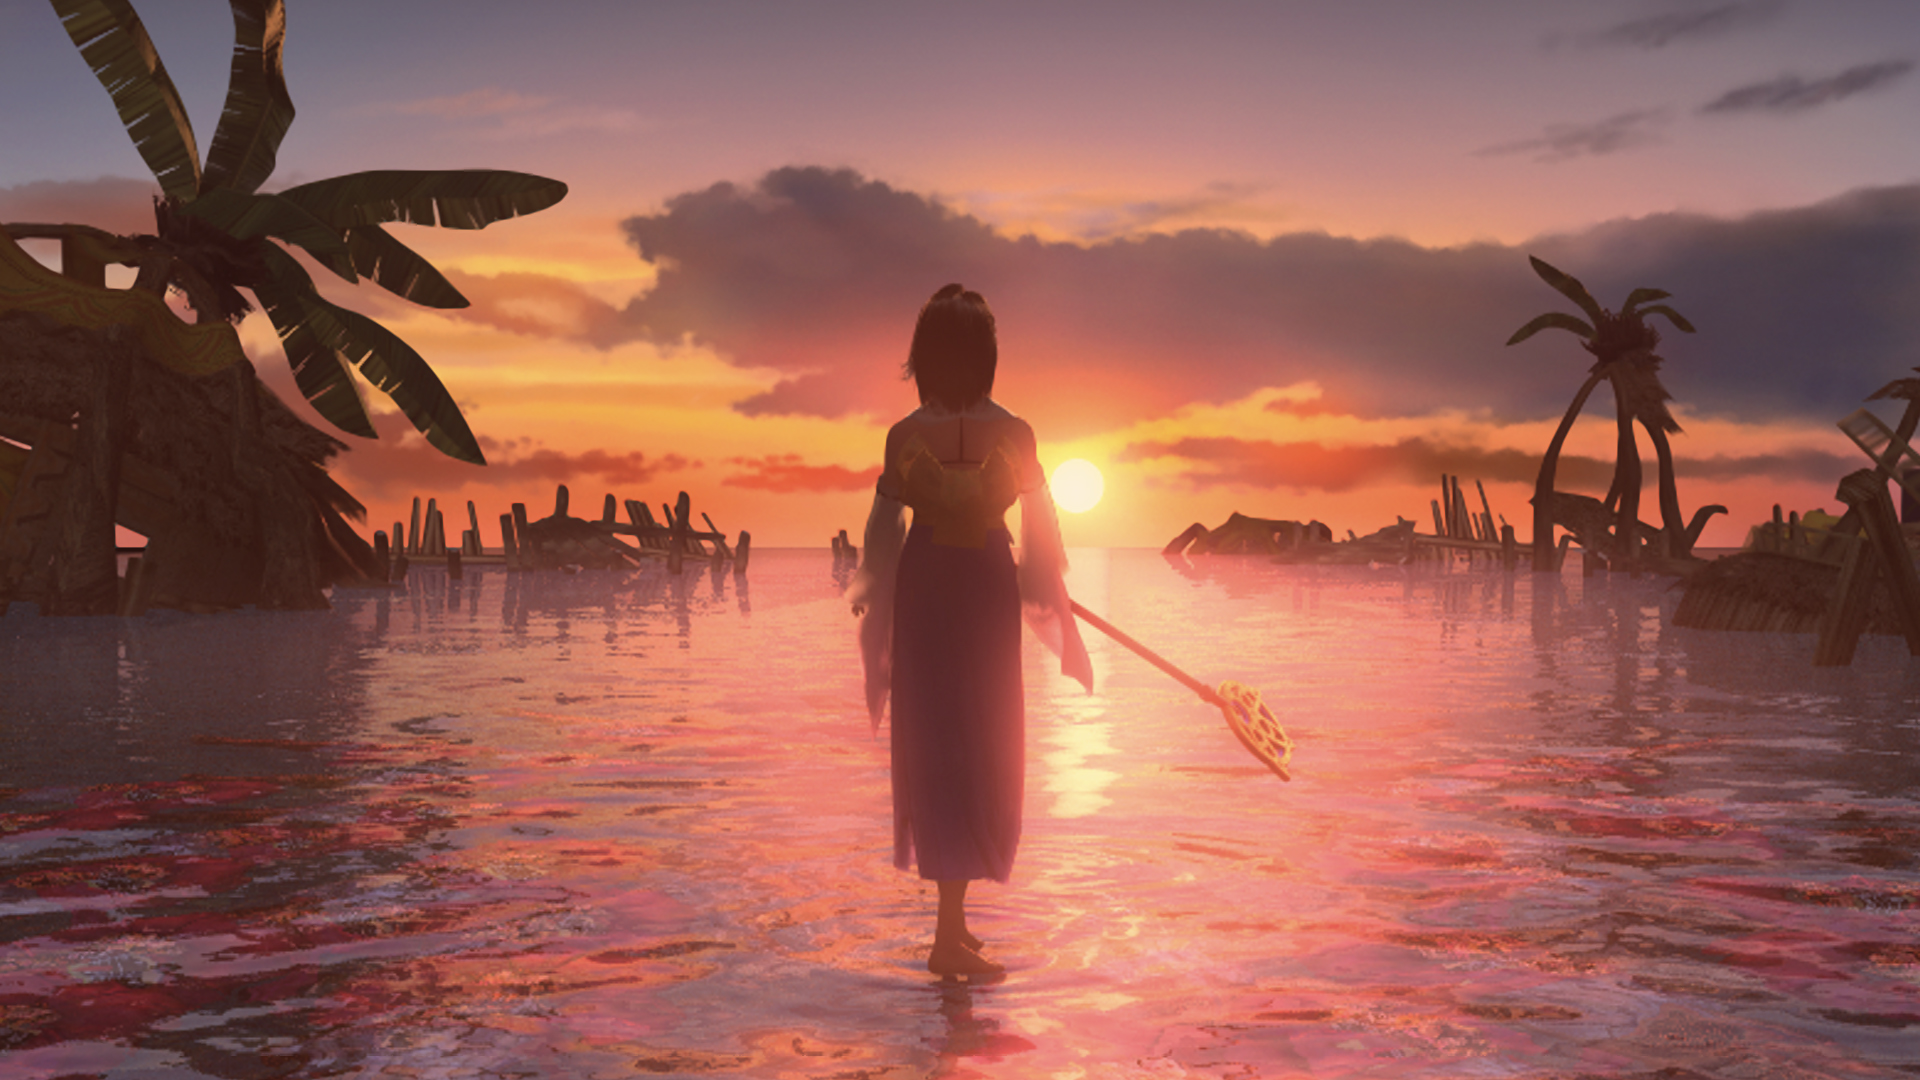 Yuna In Sunset Wallpaper From Final Fantasy X Hd Gamepressure Com